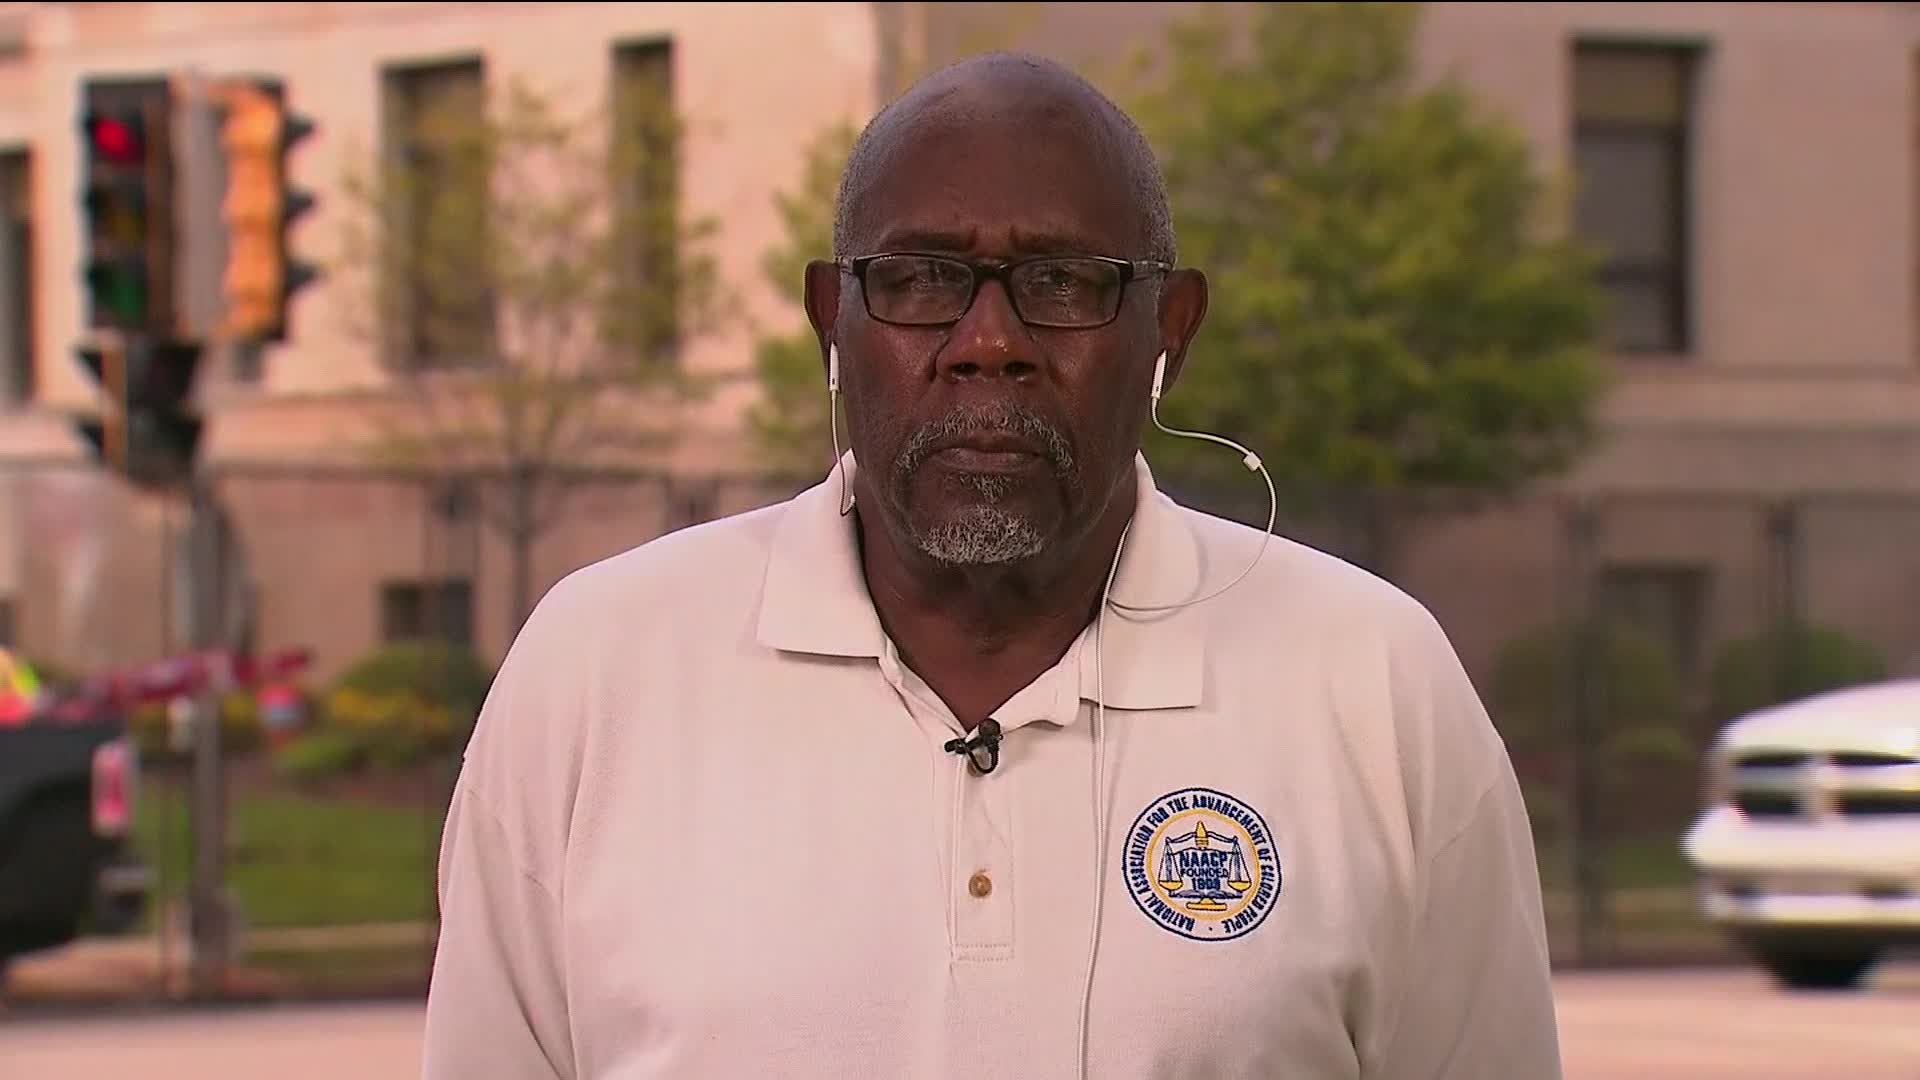 Wendell Harris, the president of the Wisconsin branch of the NAACP, speaks during an interview on August 25.